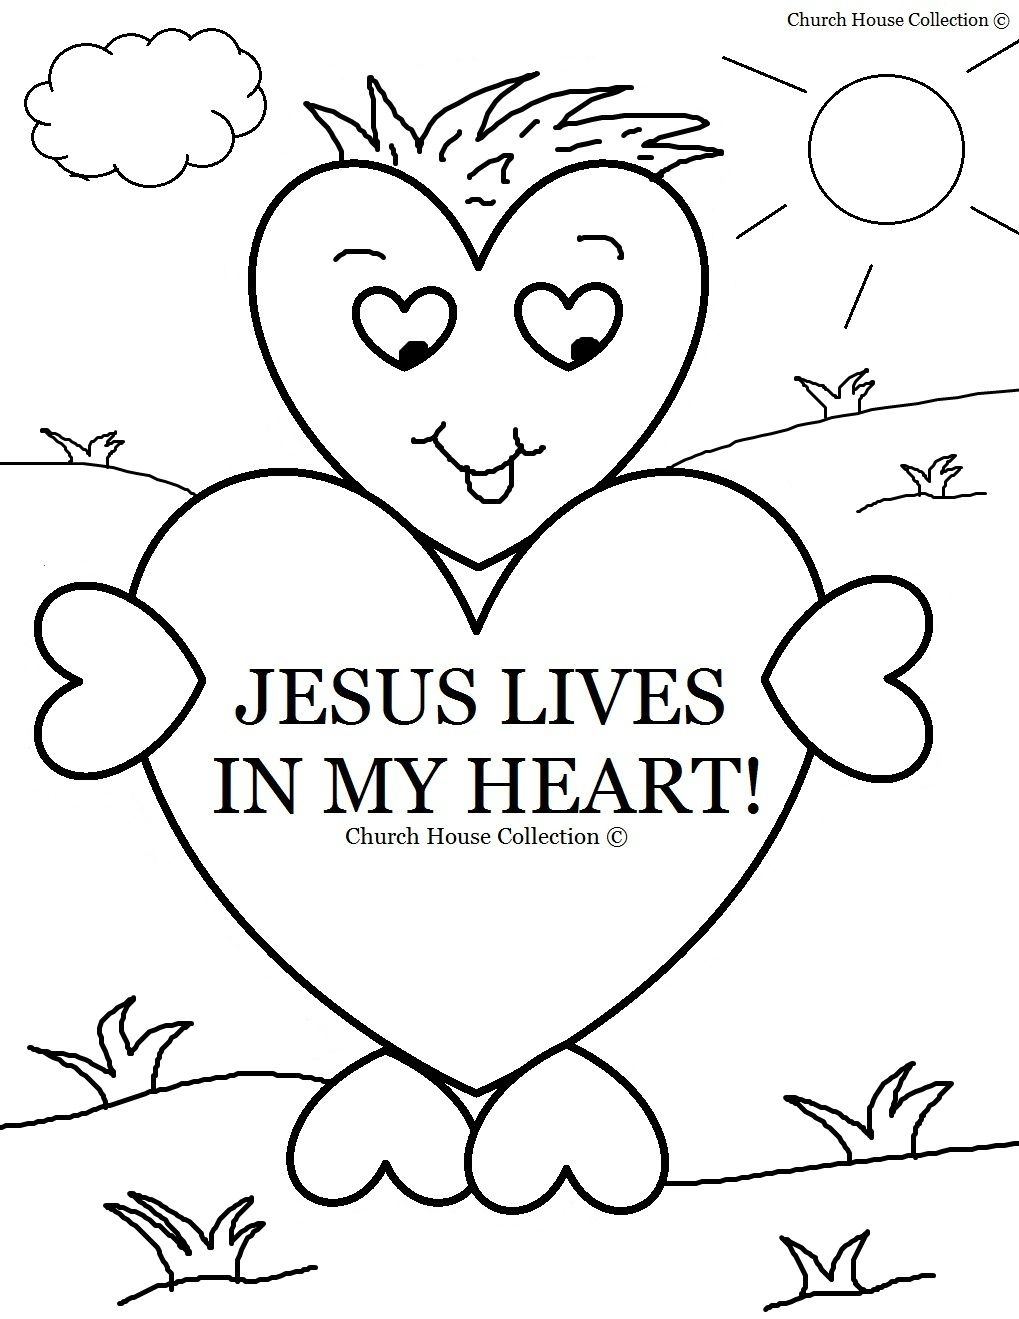 church house collection blog jesus lives in my heart coloring page for sunday school